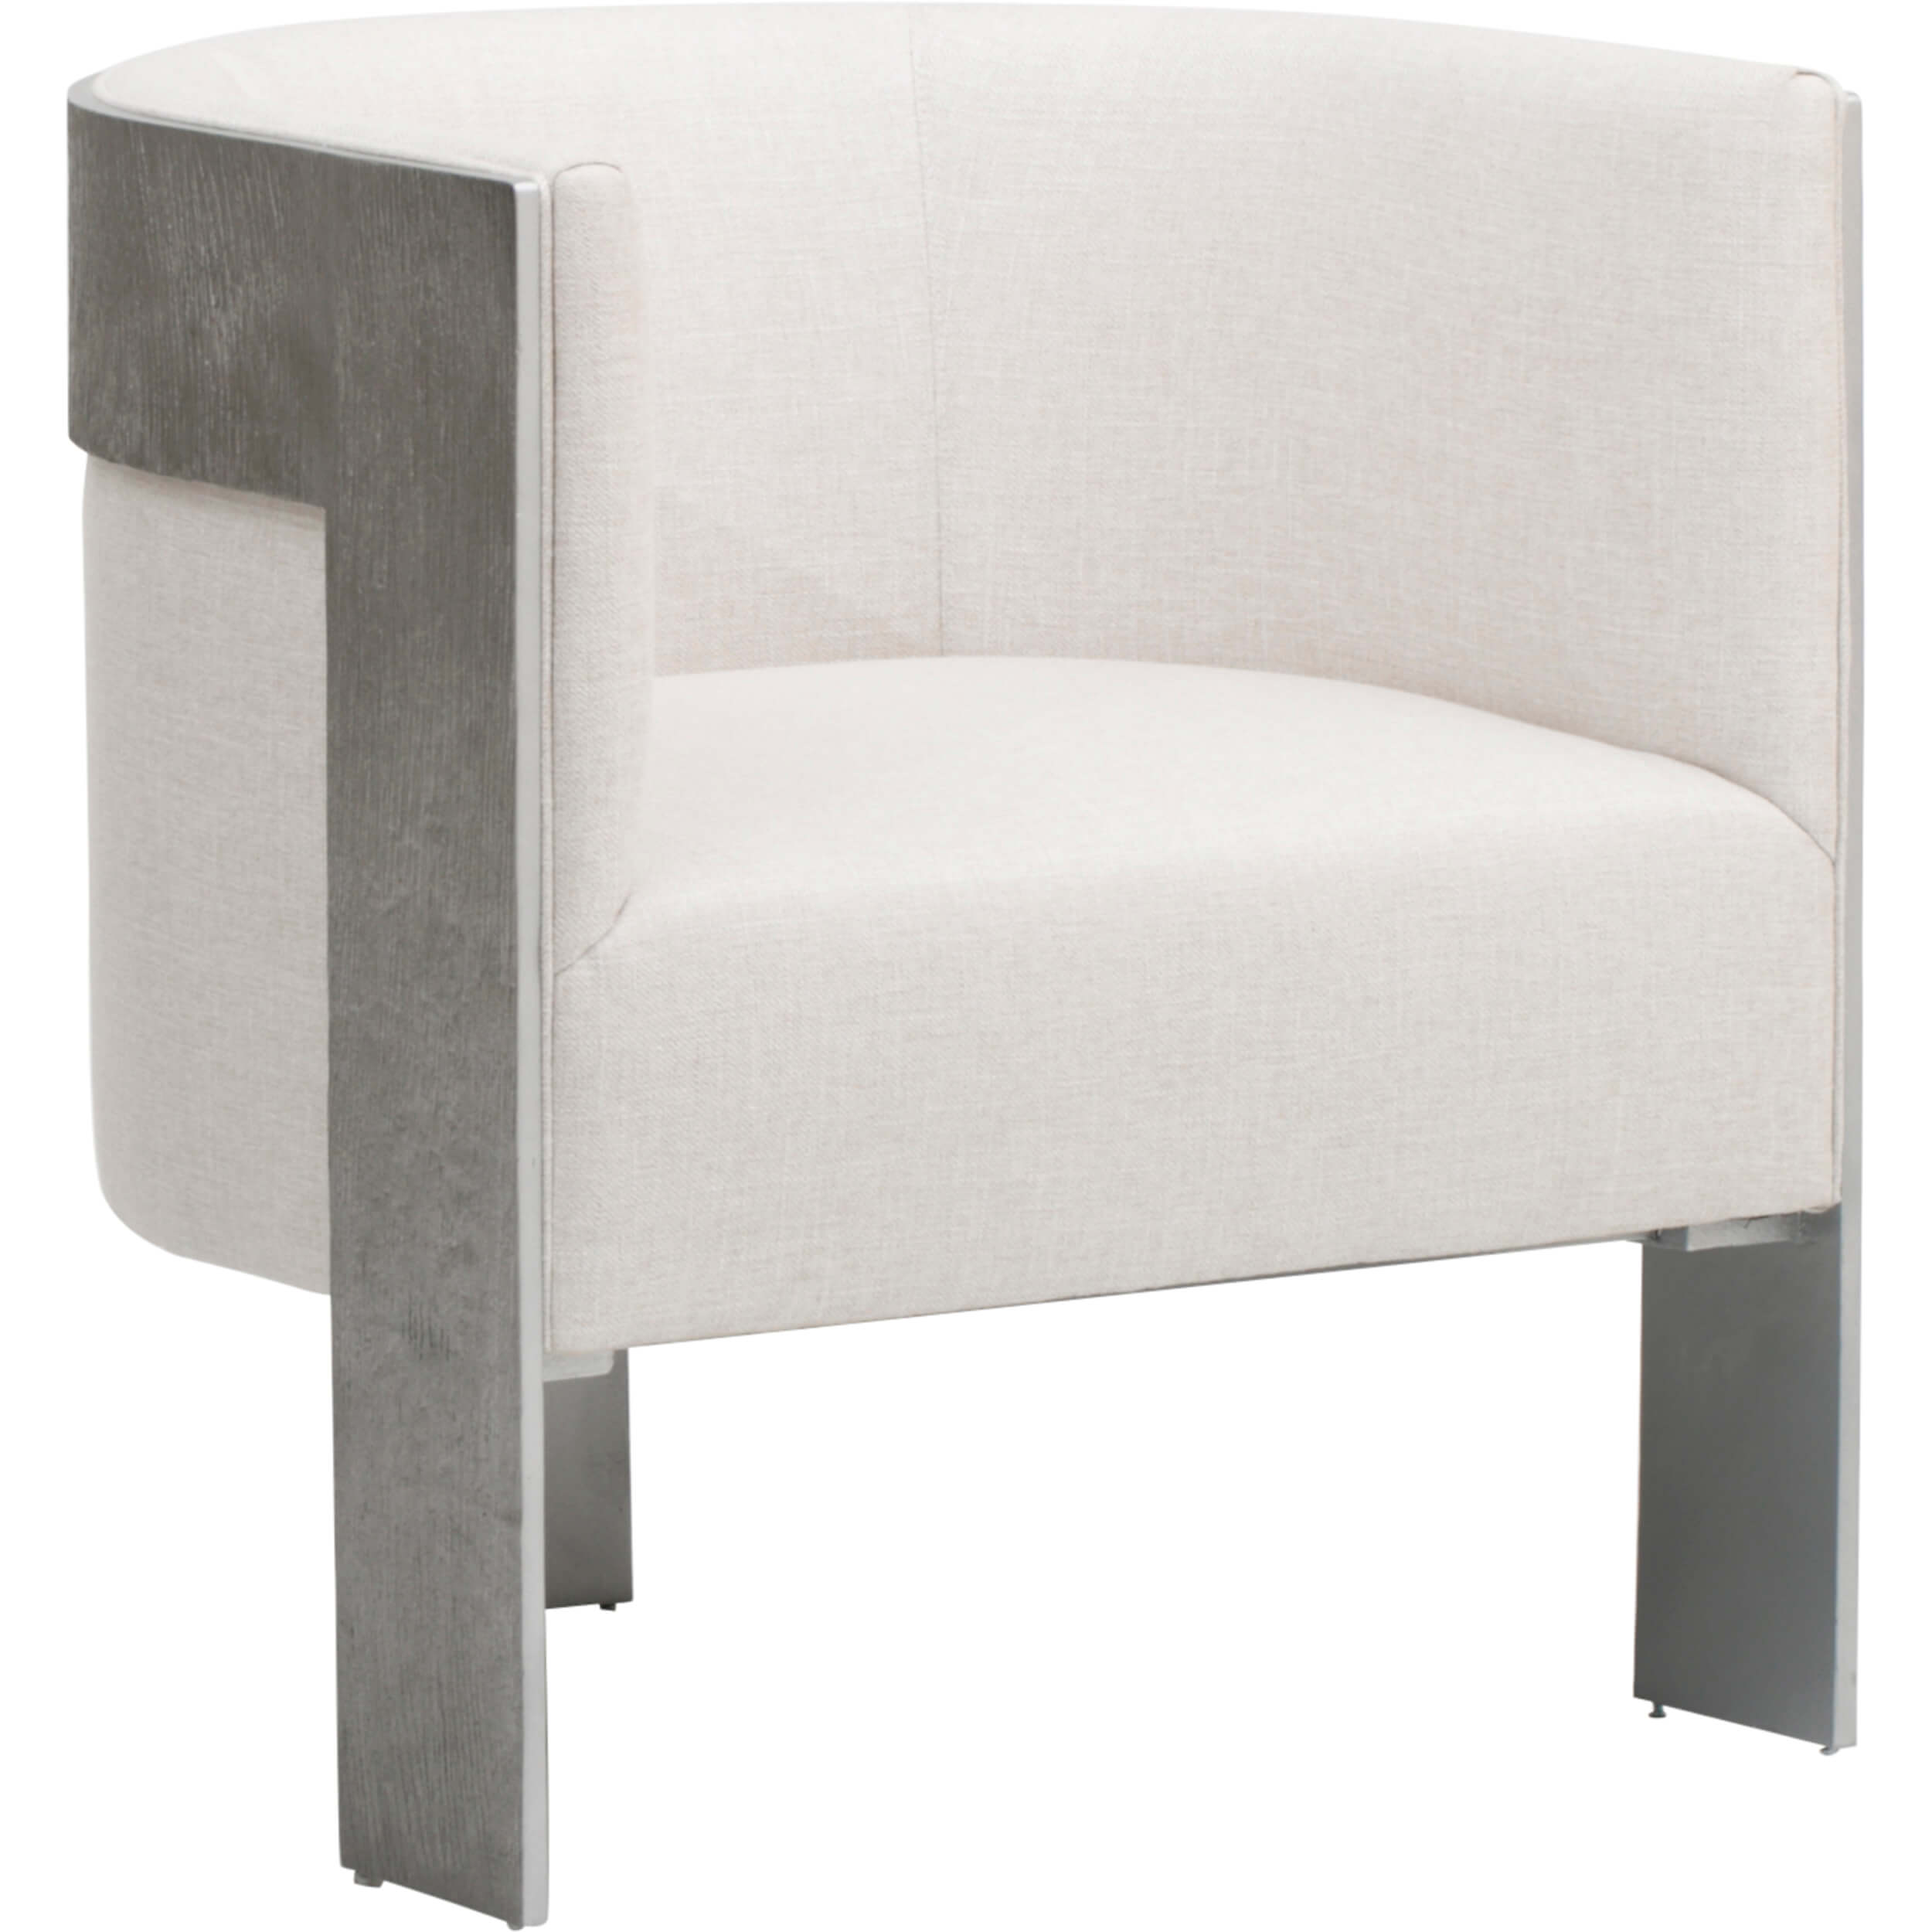 Enjoyable Highfashionhome A Stately Entertaining Space Milled Short Links Chair Design For Home Short Linksinfo